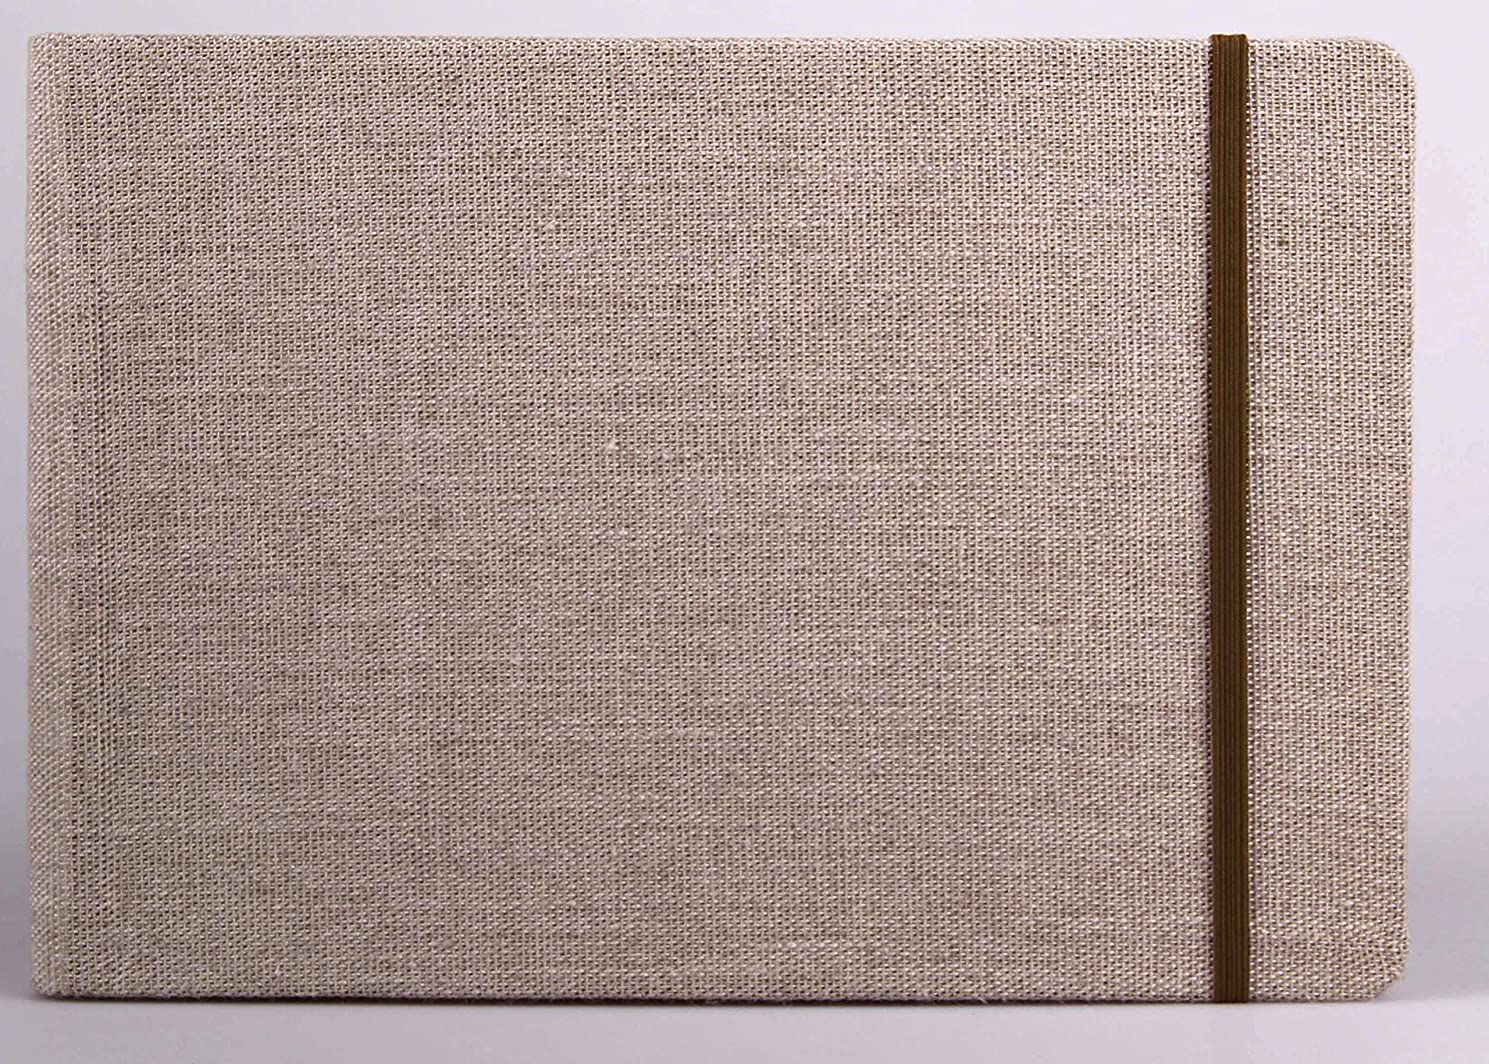 Clairefontaine Goldline Mixed-Media Sketchbook & Journal, Landscape, 8.25 by 11.75 Inches, 30 Pages (96107)